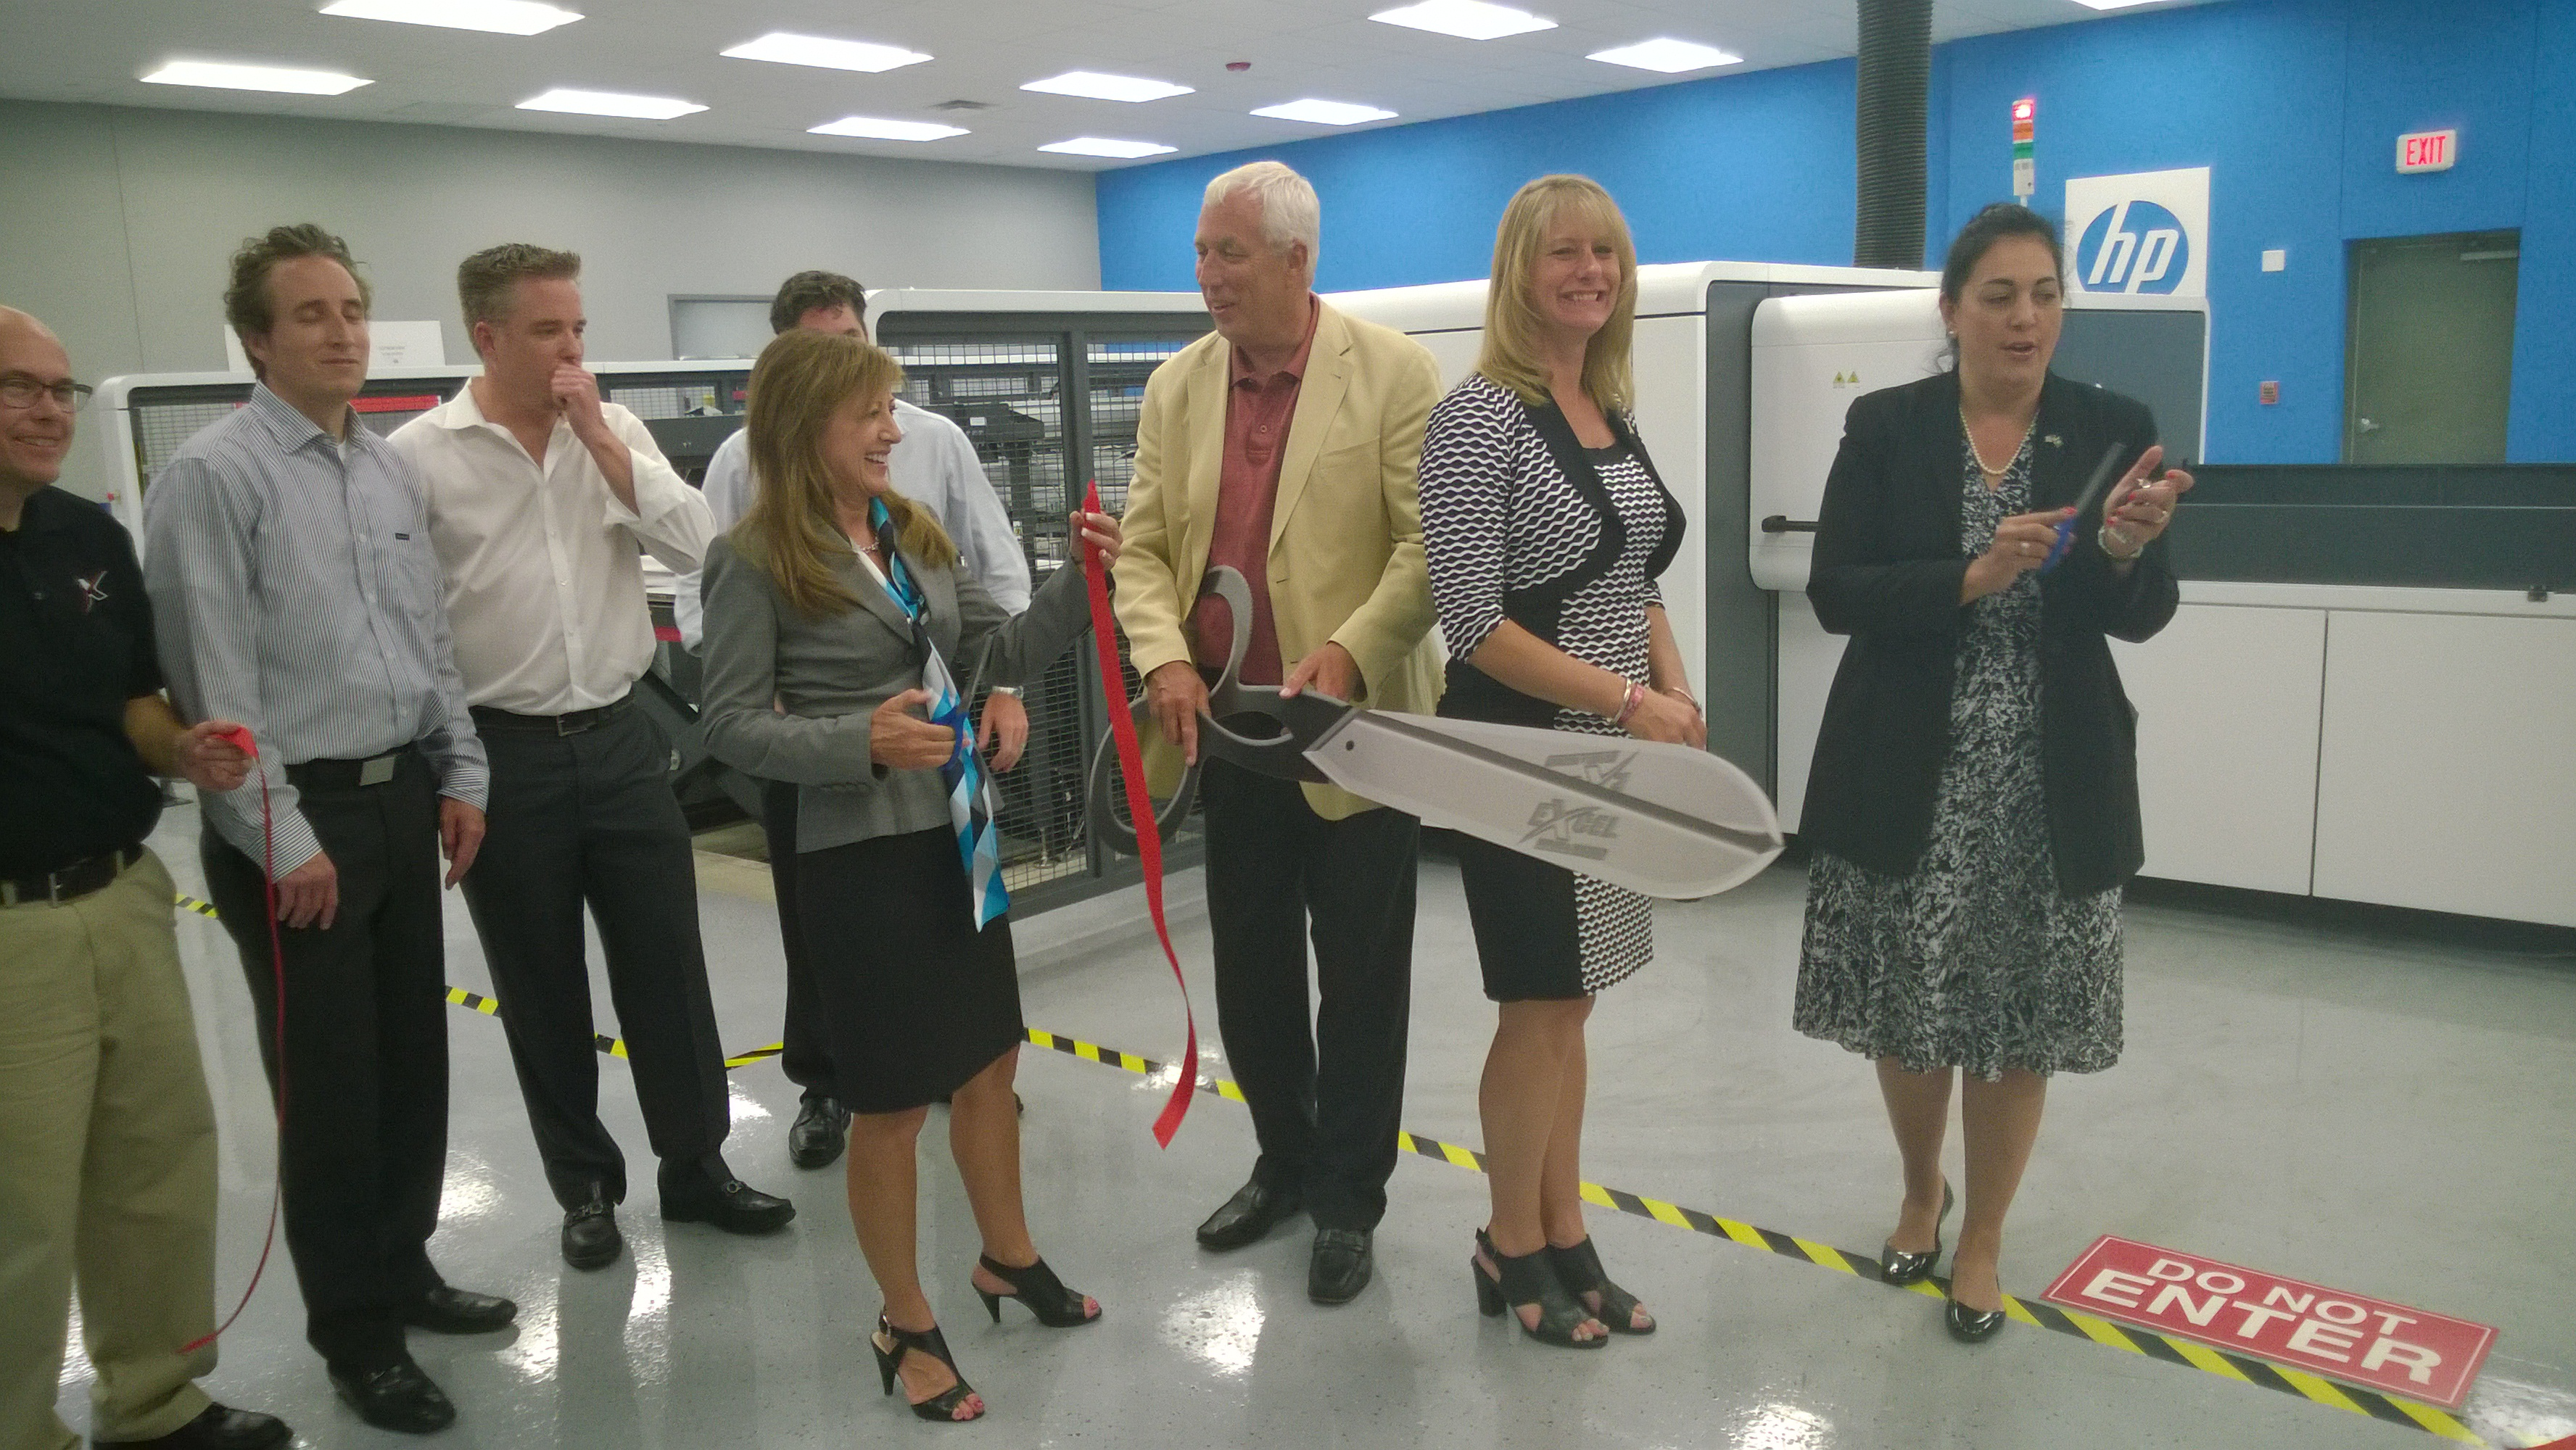 Sen. Holmes joins Excel leaders to unveil their new printing machine